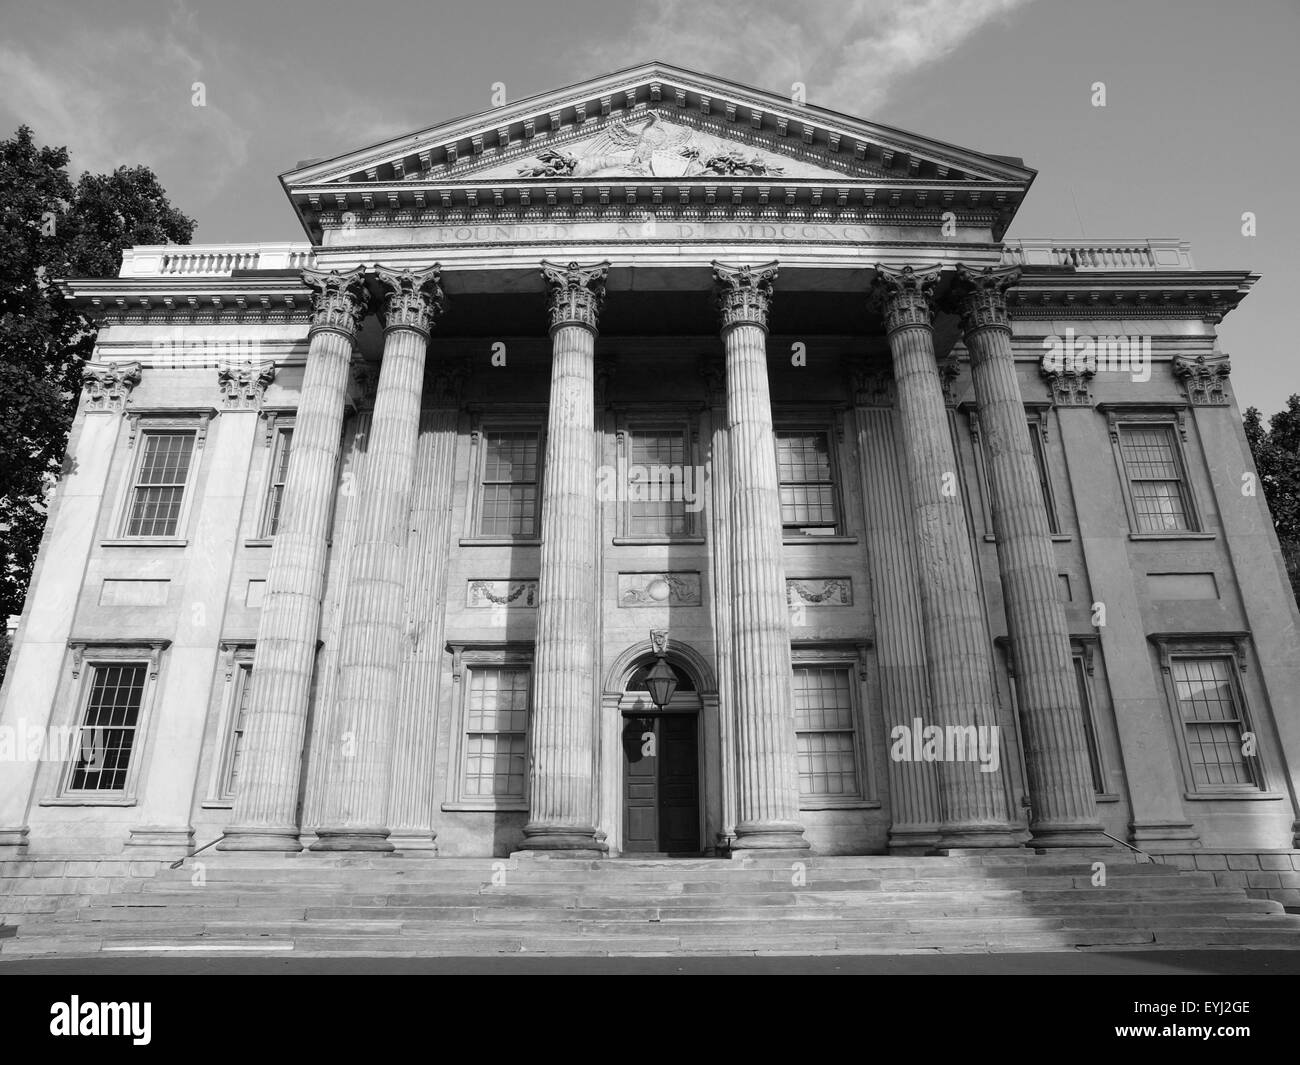 The historic First National Bank Building at Independence Hall National Historic Park in Philadelphia.  The building - Stock Image